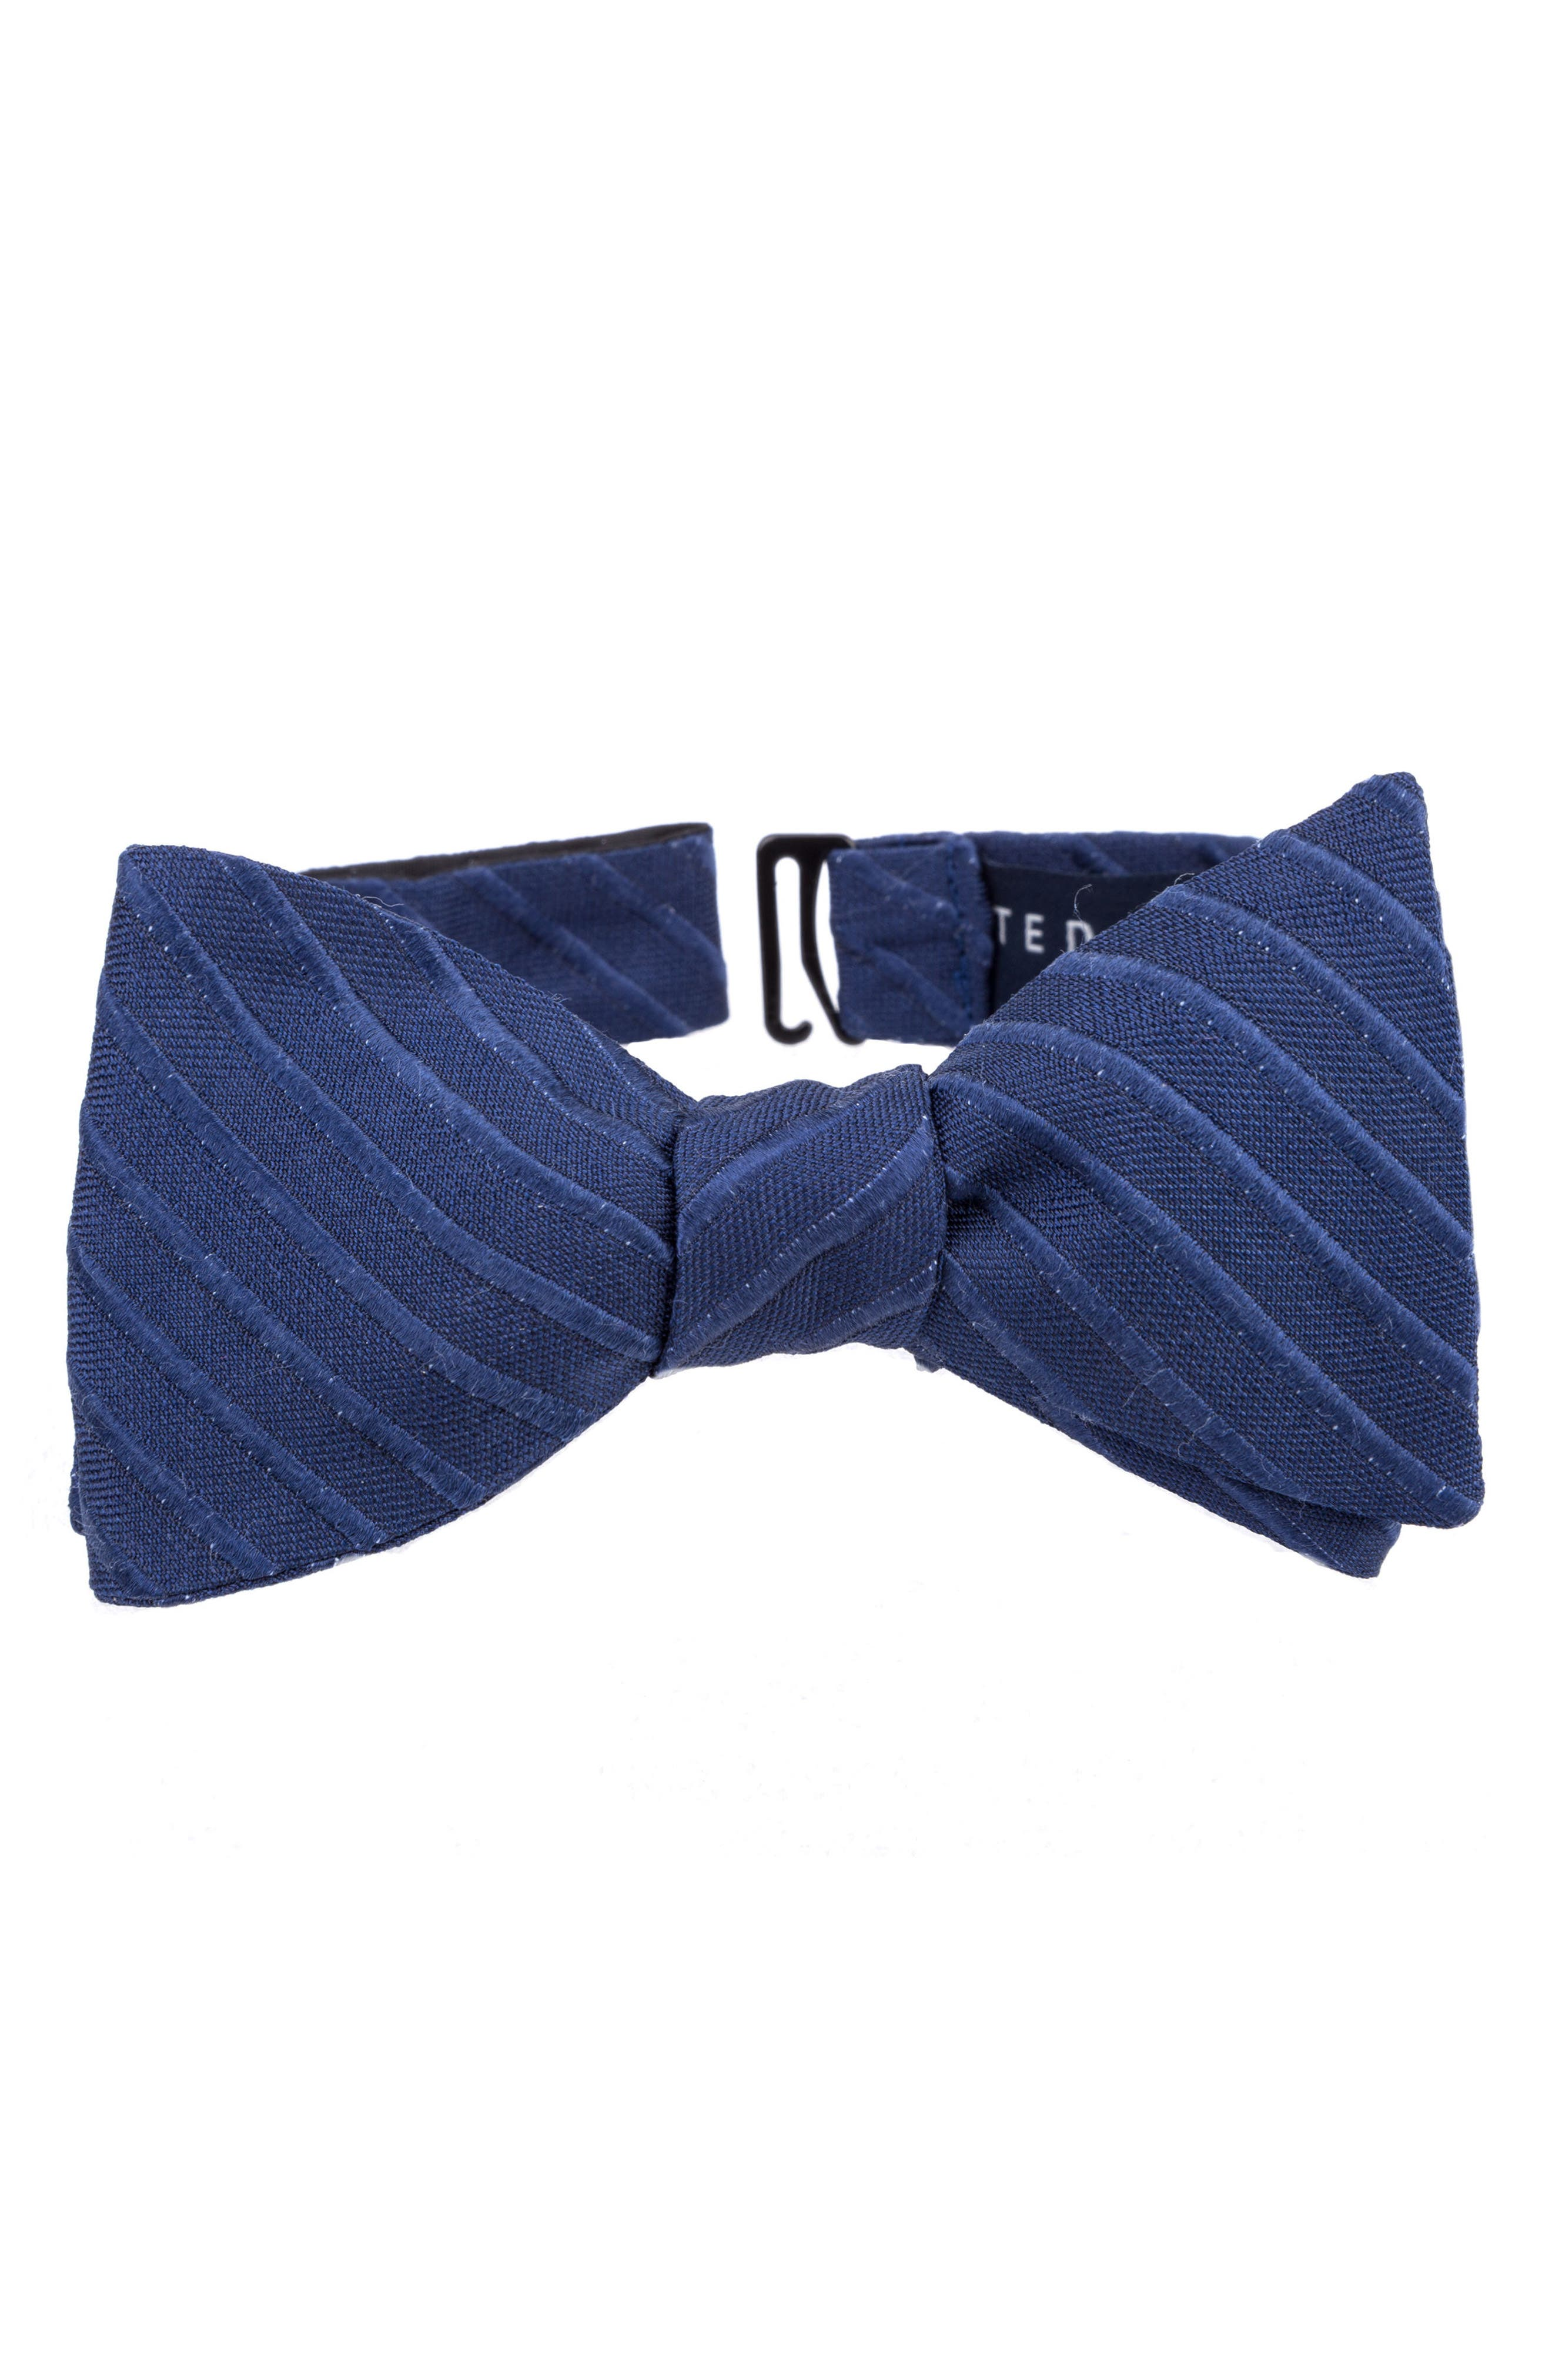 Alternate Image 1 Selected - Ted Baker London Indigo Wardrobe Silk Bow Tie